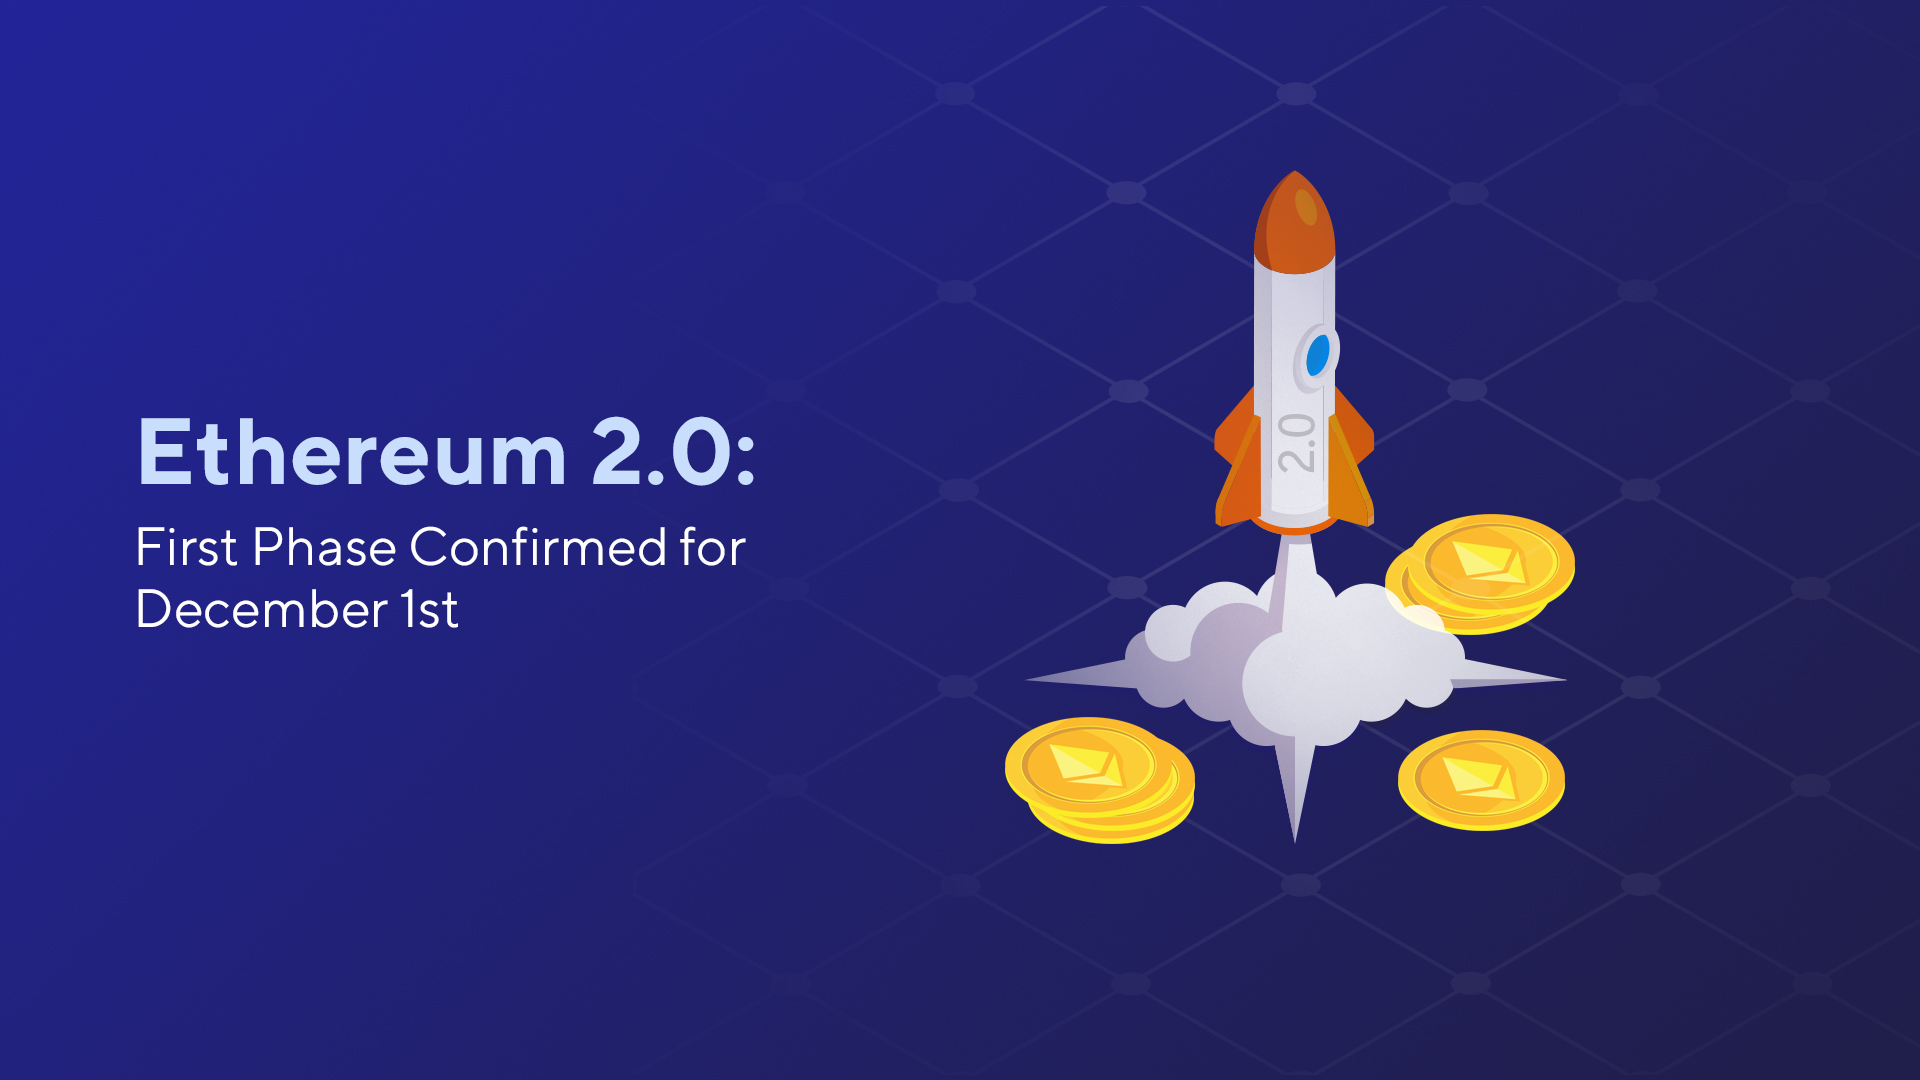 Ethereum 2.0: First Phase Confirmed for December 1st